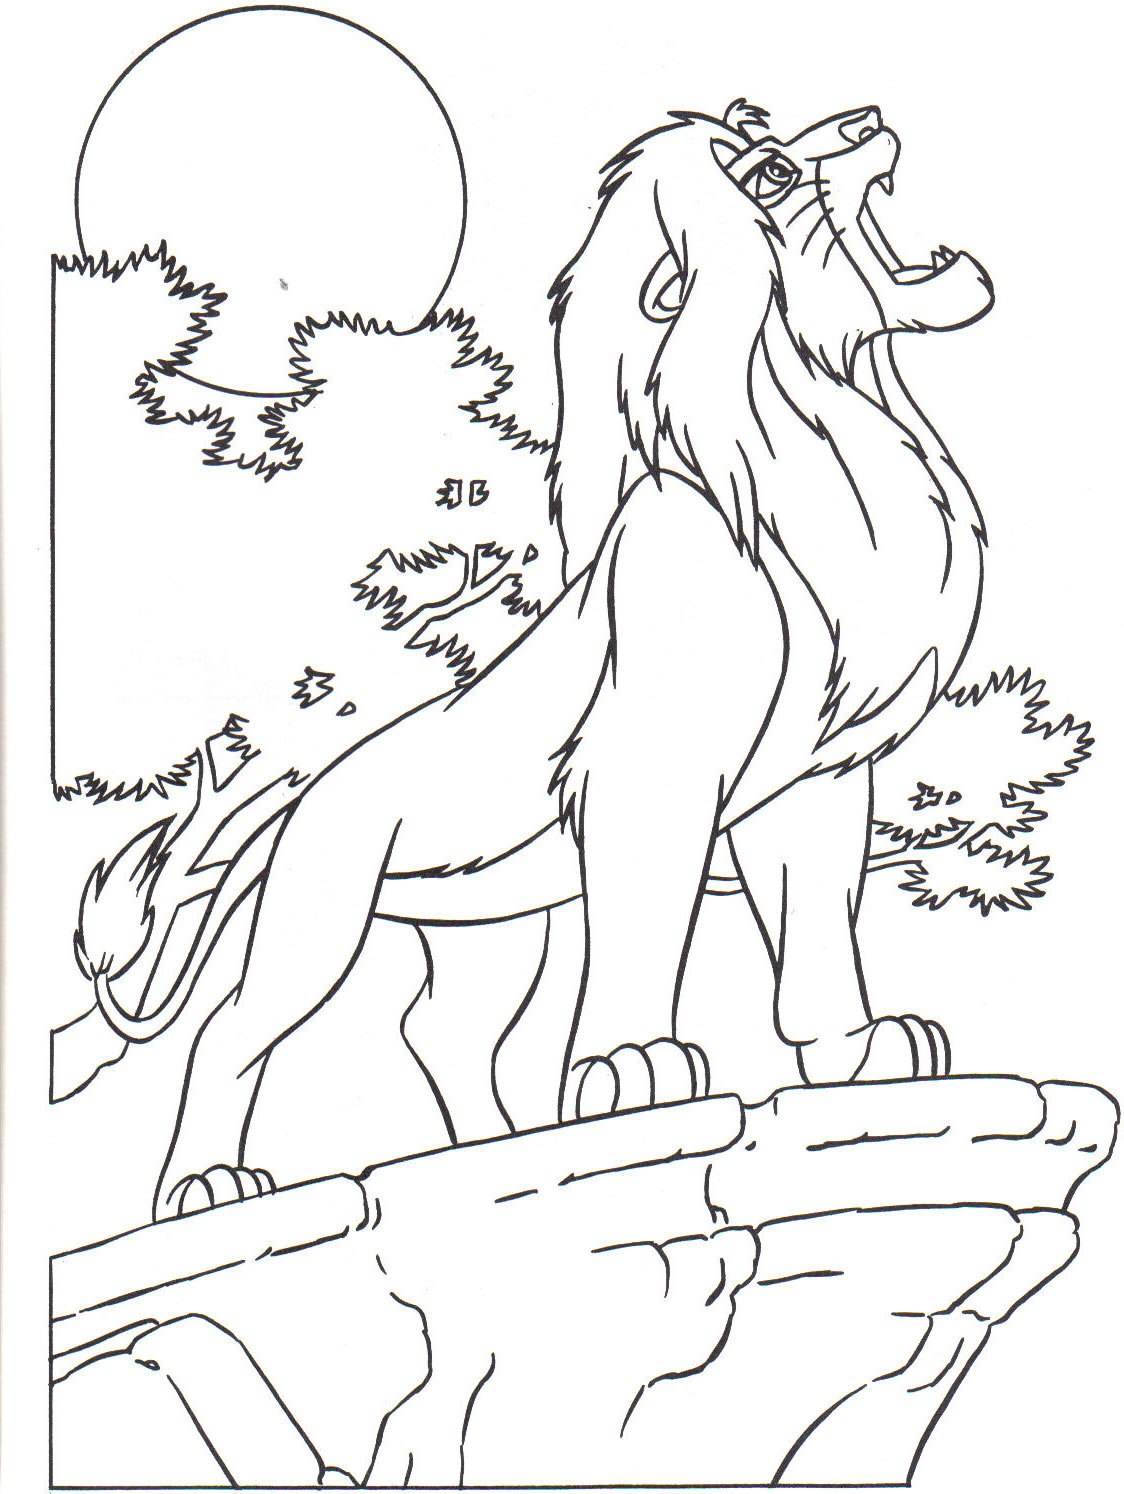 Funny The Lion King coloring page with the King Mufasa